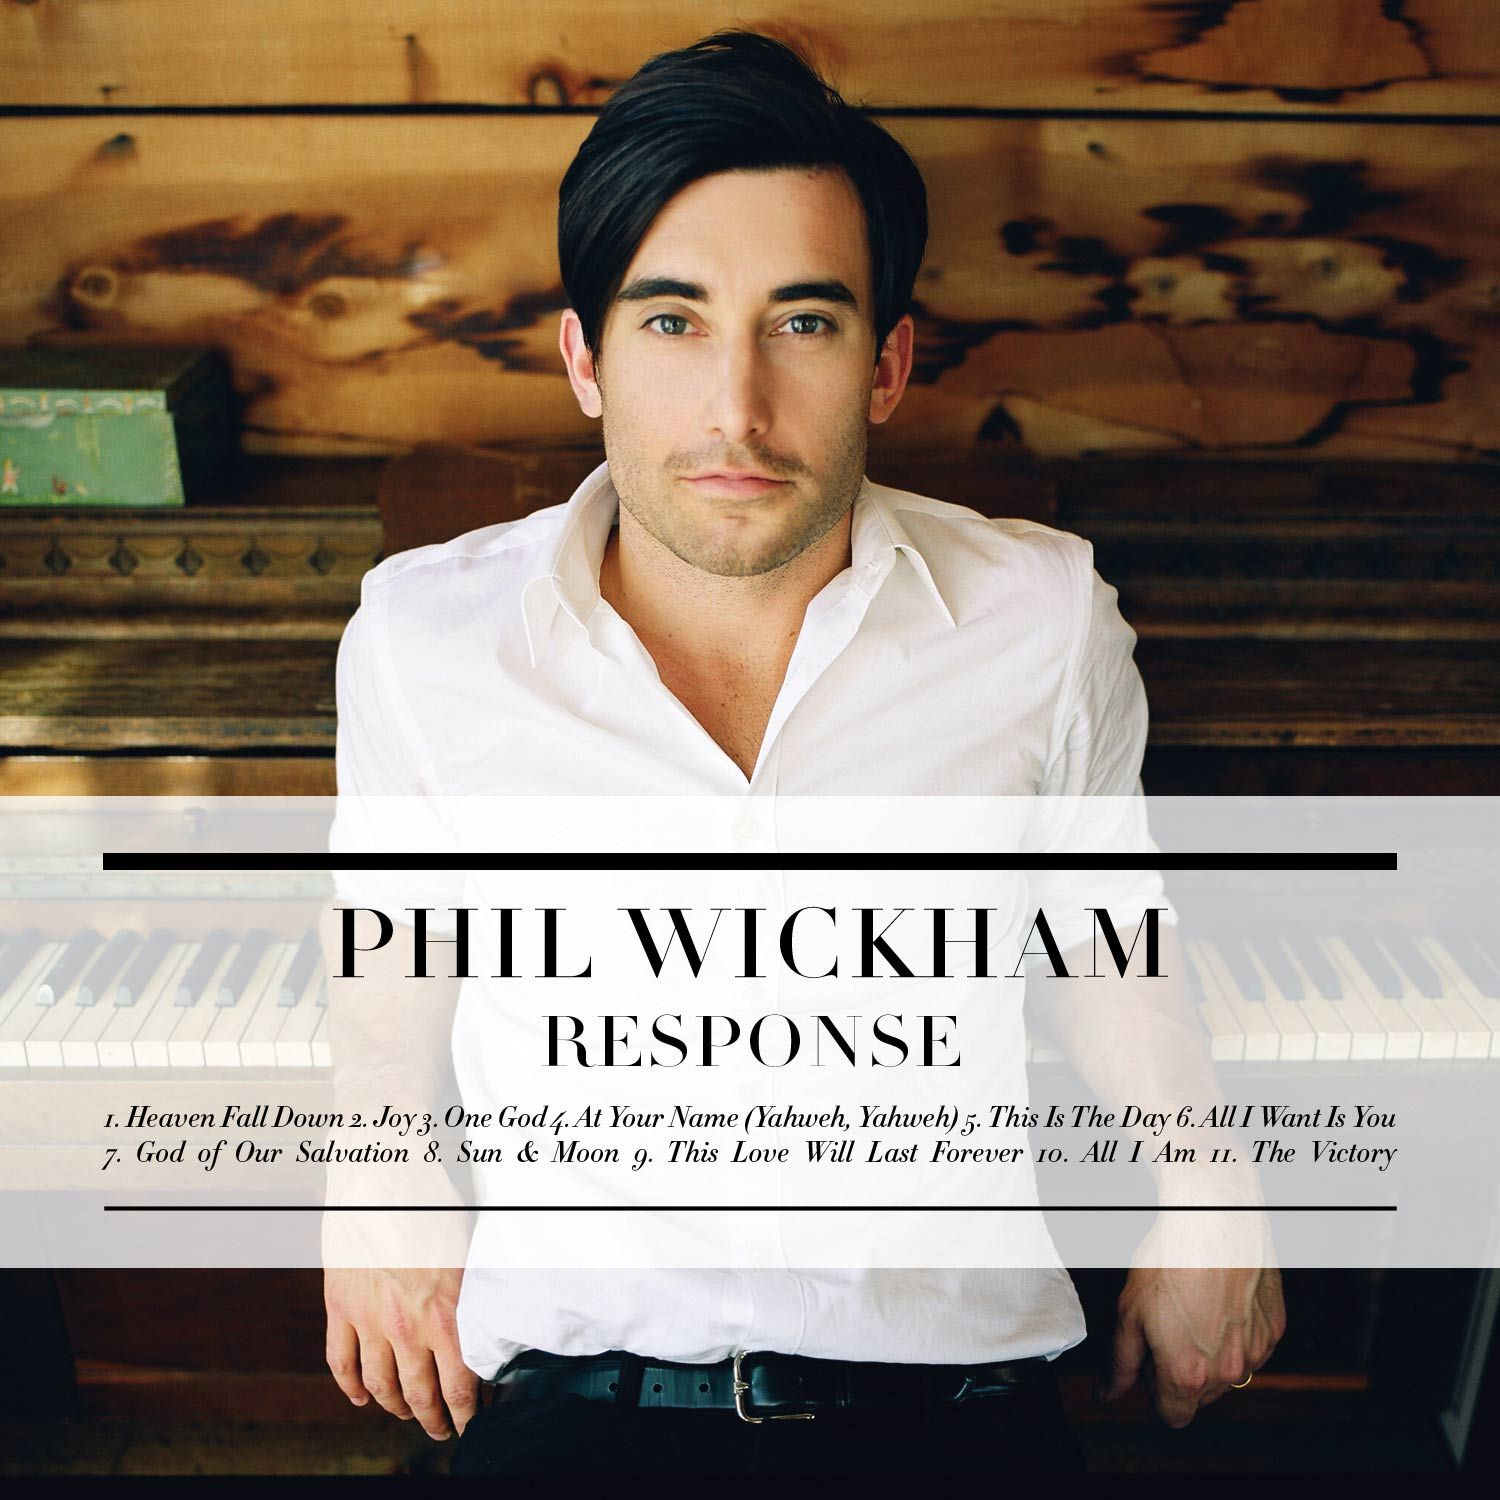 Phil Wickham - Response album cover